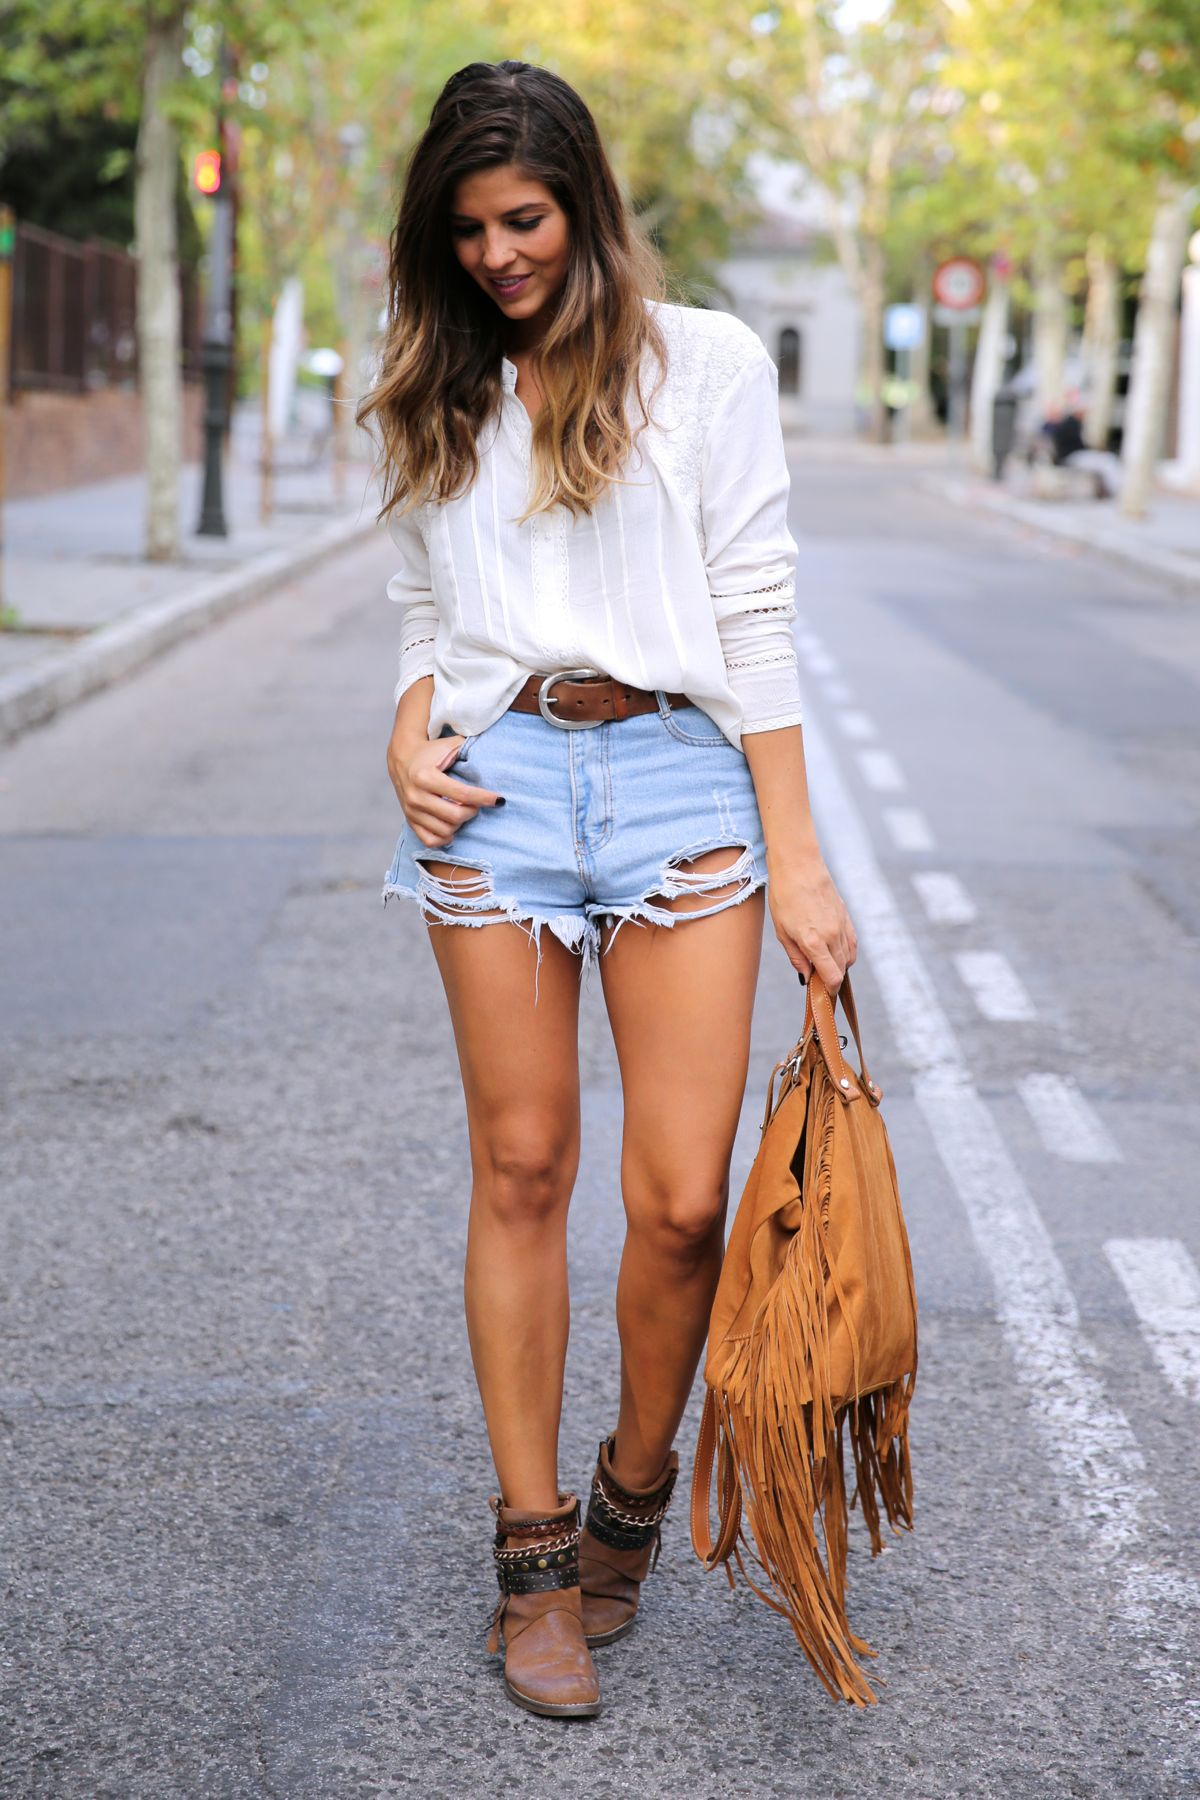 trendy_taste-look-outfit-street_style-ootd-blog-blogger-fashion_spain-moda_españa-boho-hippie-flecos-botines_camperos-cowboy_booties-mochila-backpack-blusa-camisa-denim-shorts-vaqueros-6